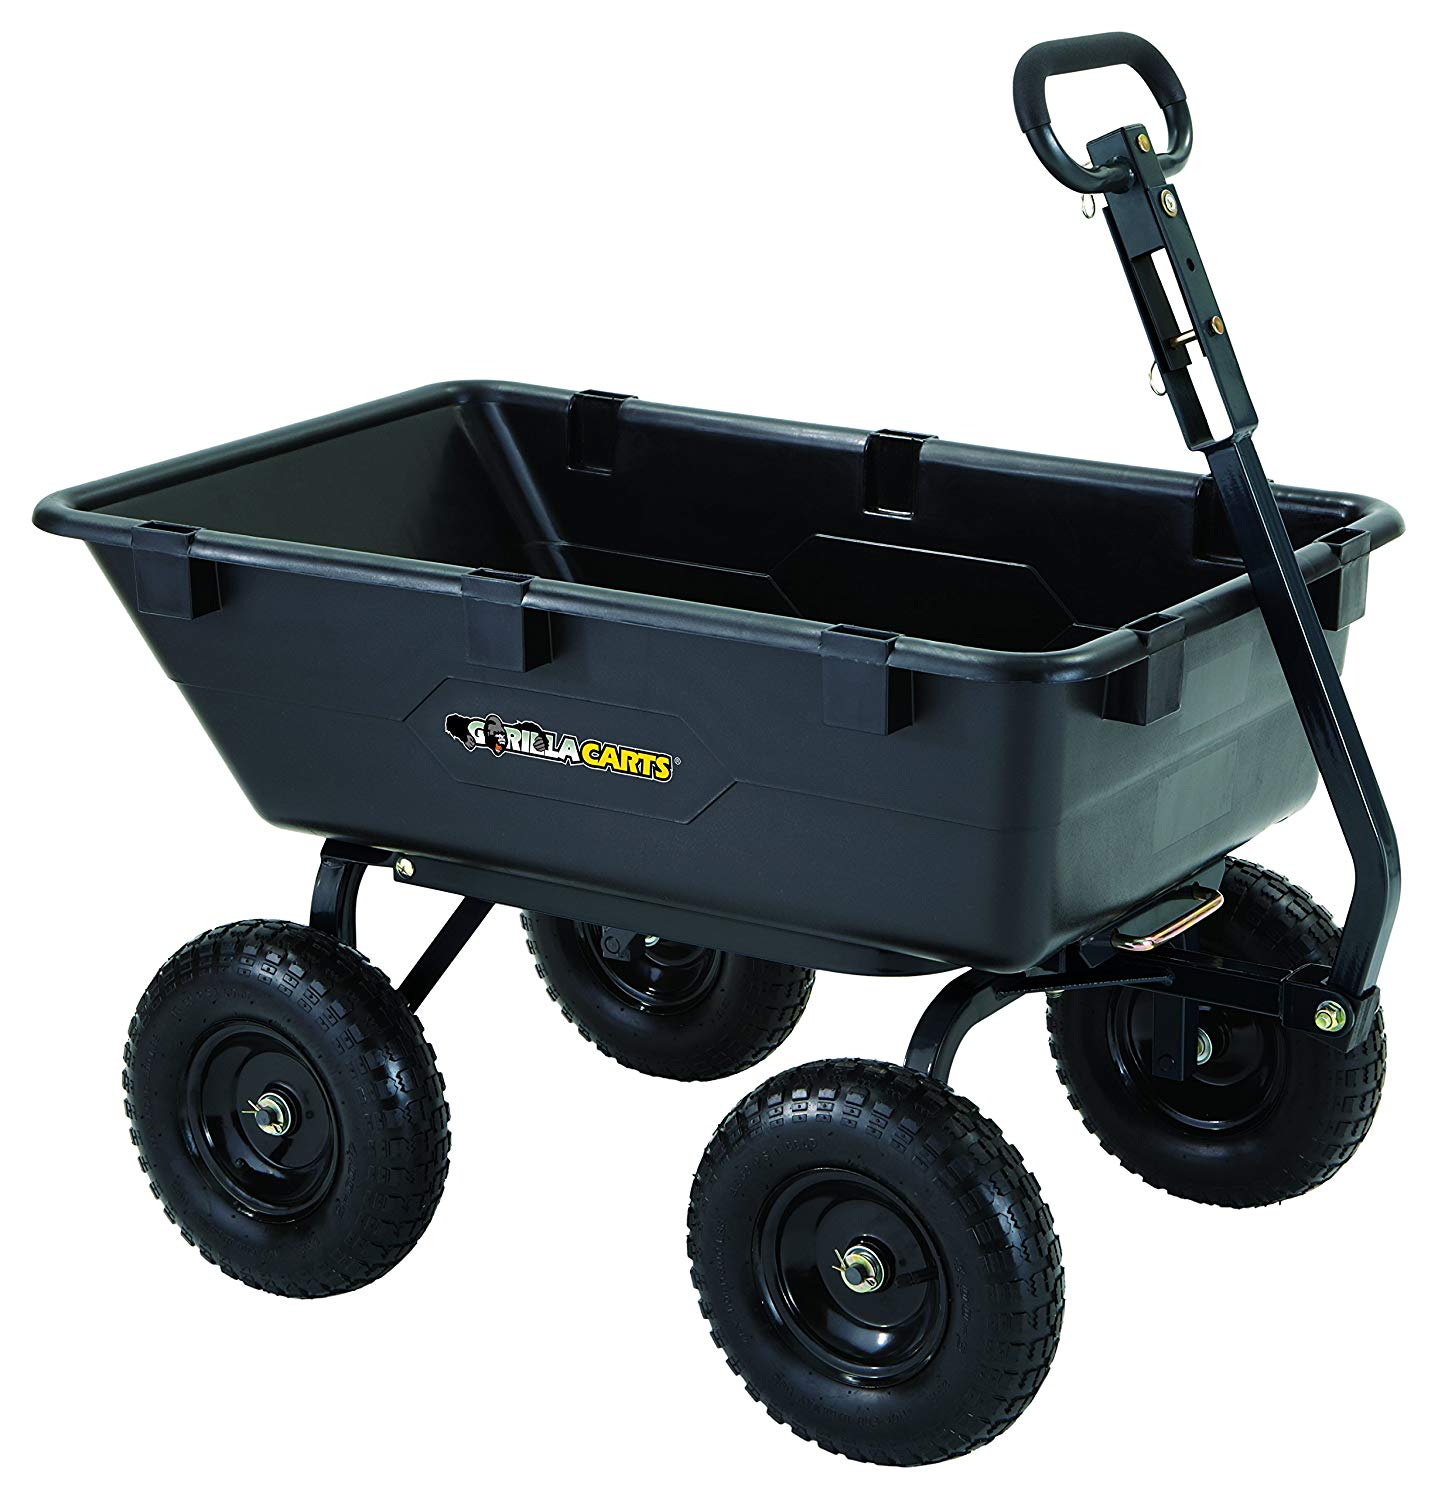 Gorilla Carts GOR6PS Heavy-Duty Poly Yard Dump Cart with 2-in-1 Convertible Handle, 1,200-Pound Capacity, Black - Heavy Duty Lawn Garden Utility Cart Wagon